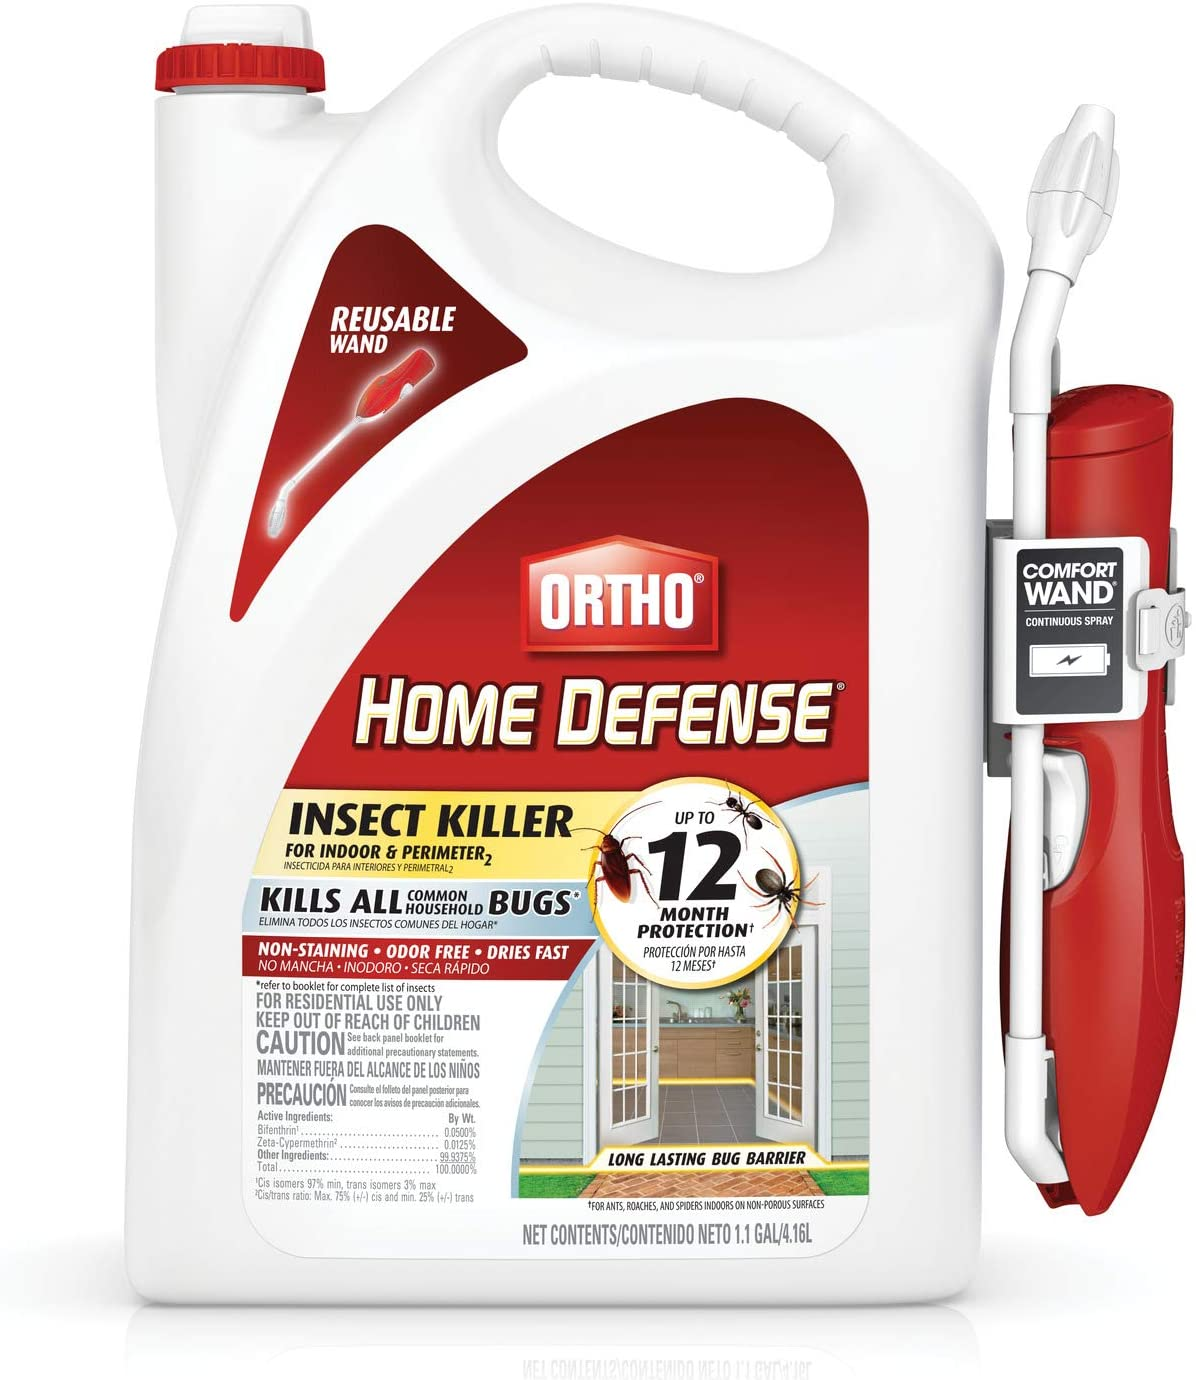 Ortho 0220910 Home Defense Insect Killer for Indoor & Perimeter2 with Comfort Wand Bonus Size, 1.1 GAL : Garden & Outdoor